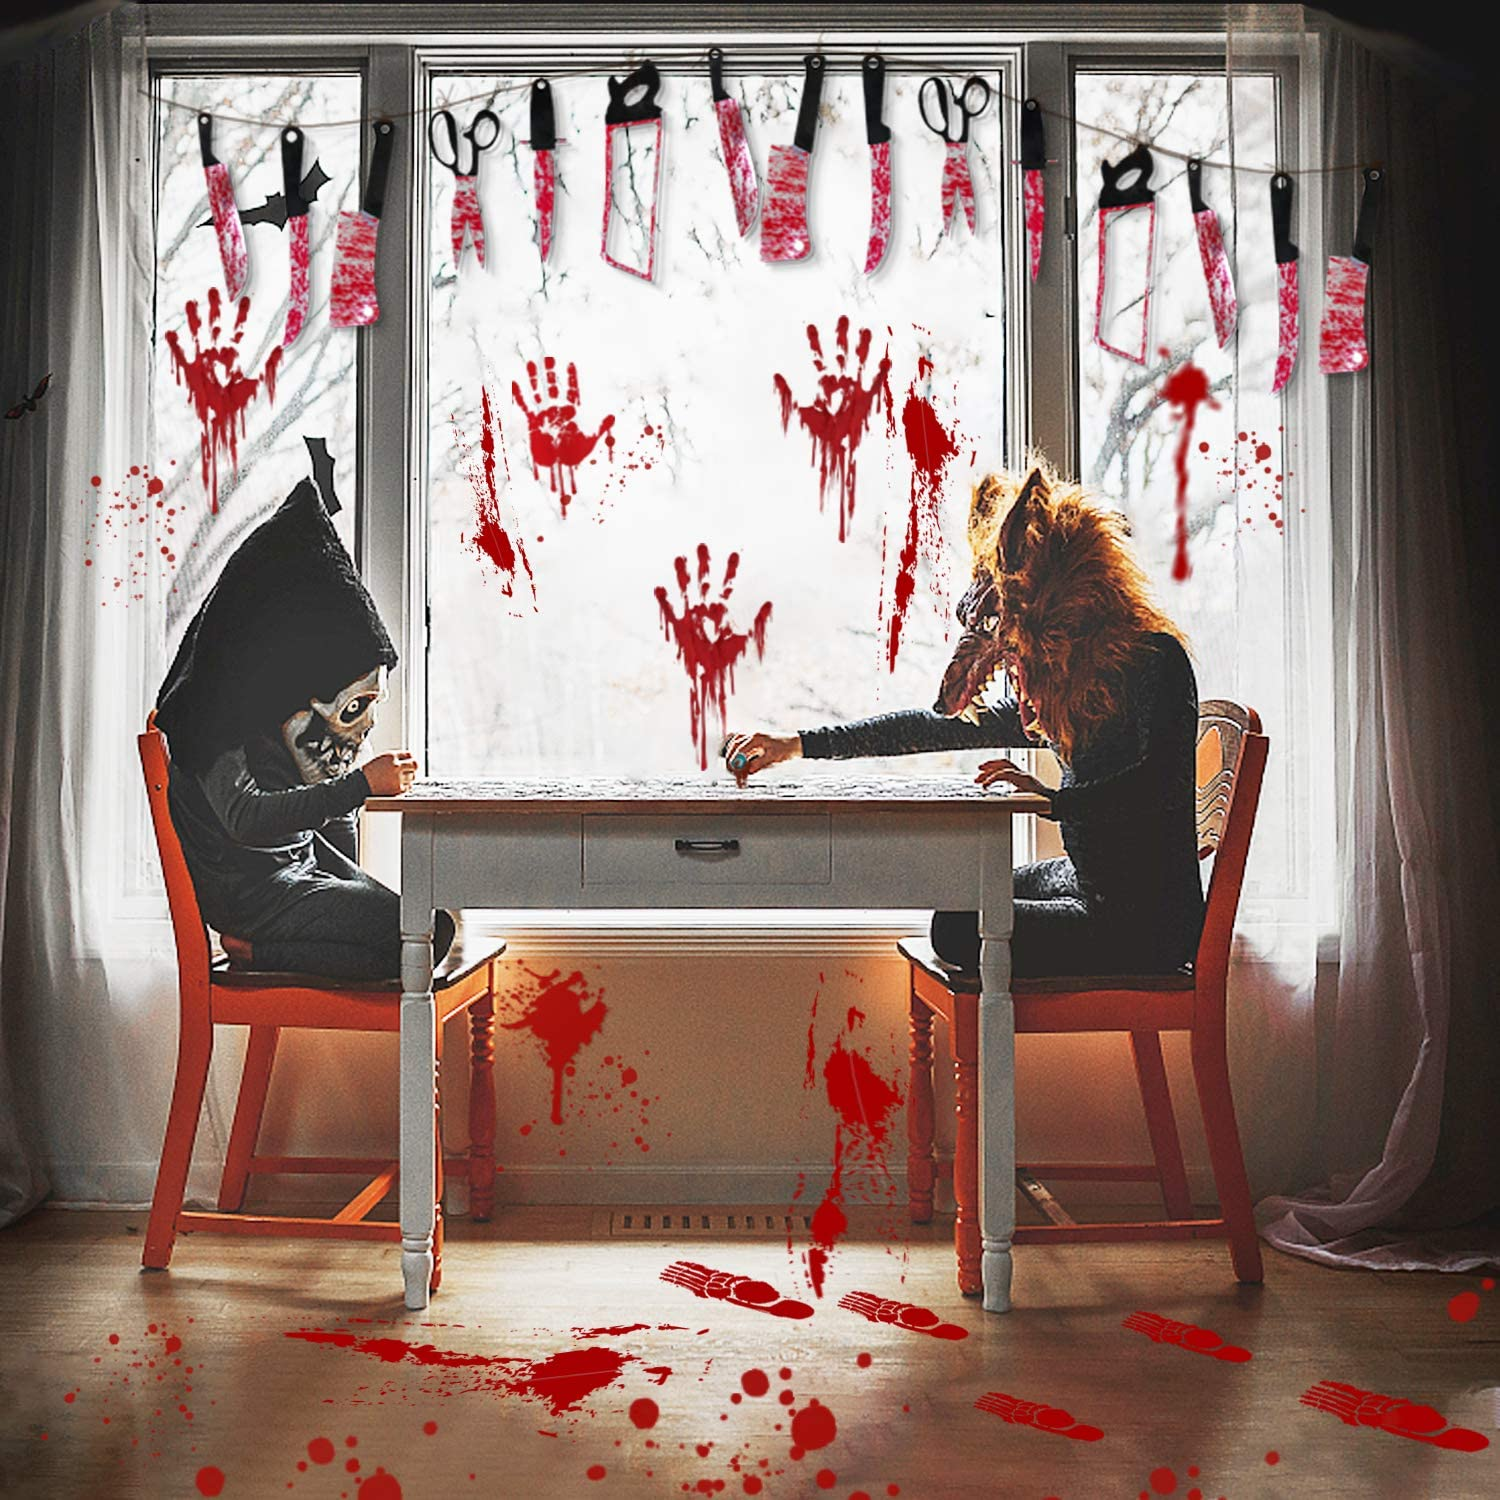 Bloody Garland Banner, Halloween Bloody Weapon Banner 2 Sets with Halloween Decorations Window Decals Wall Stickers Decor, 8 Sets Bloody Handprint Footprint Horror Bathroom Zombie Party Decorations